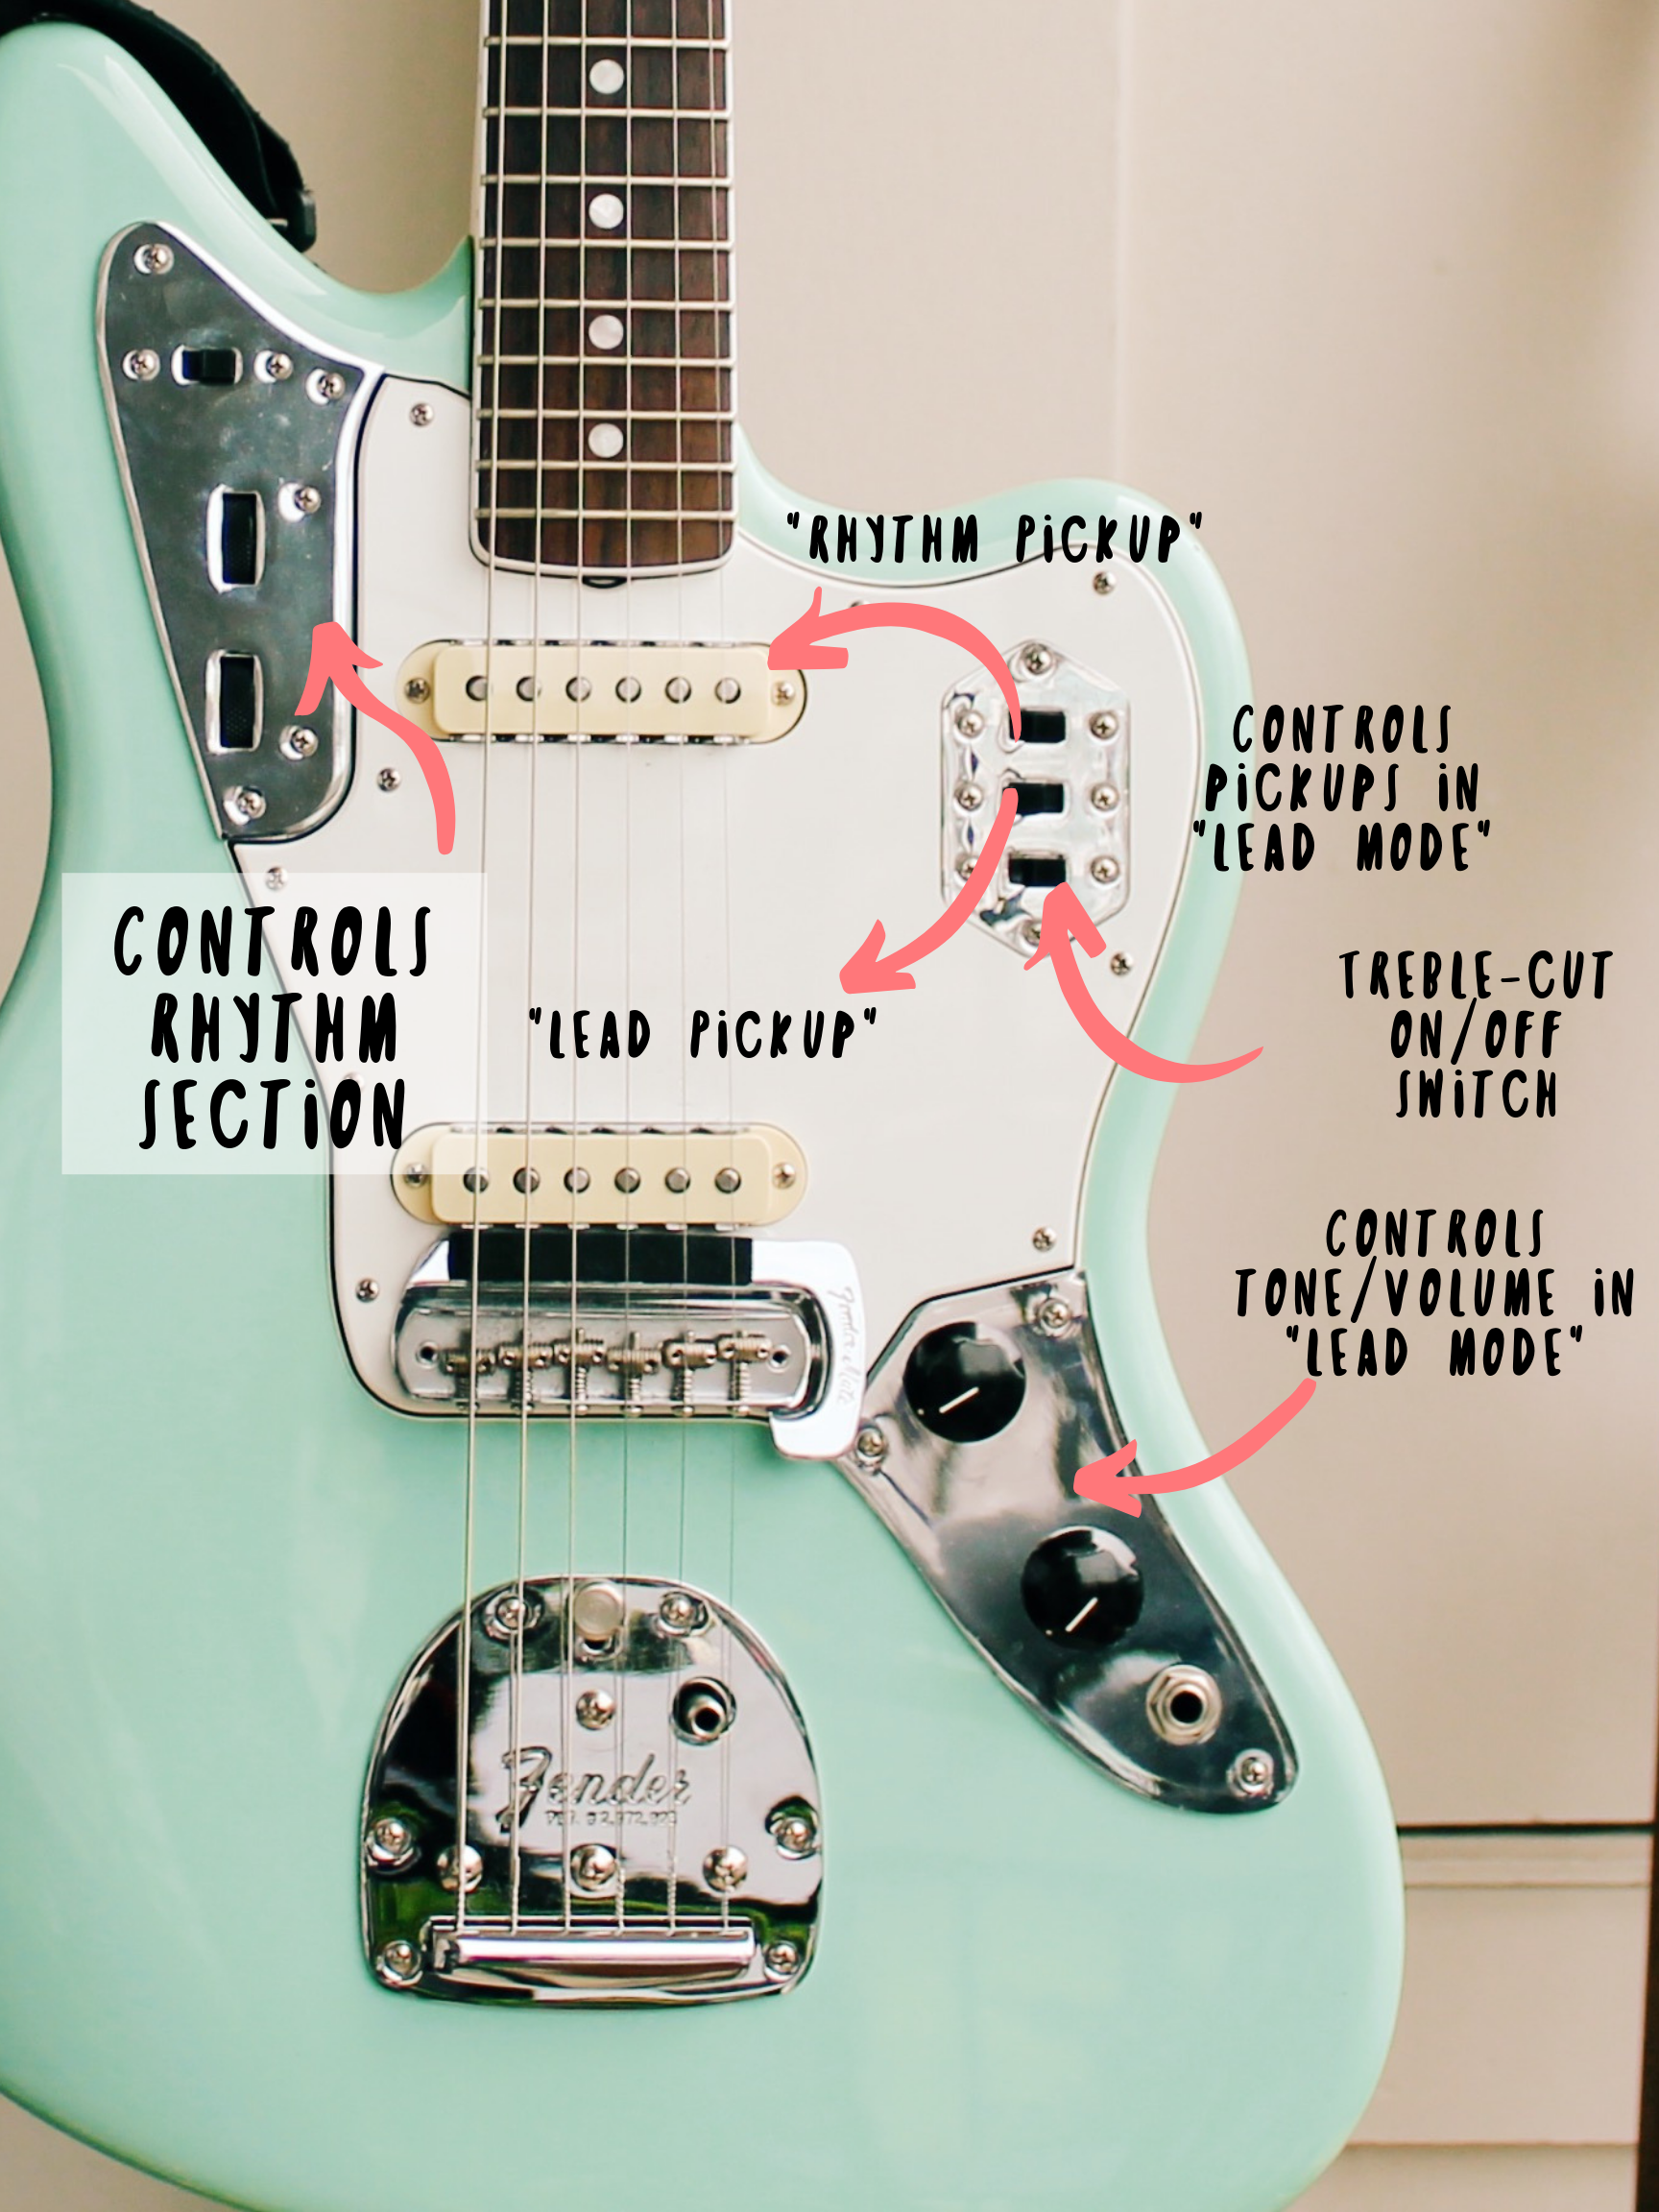 Click on the image for more from fender!